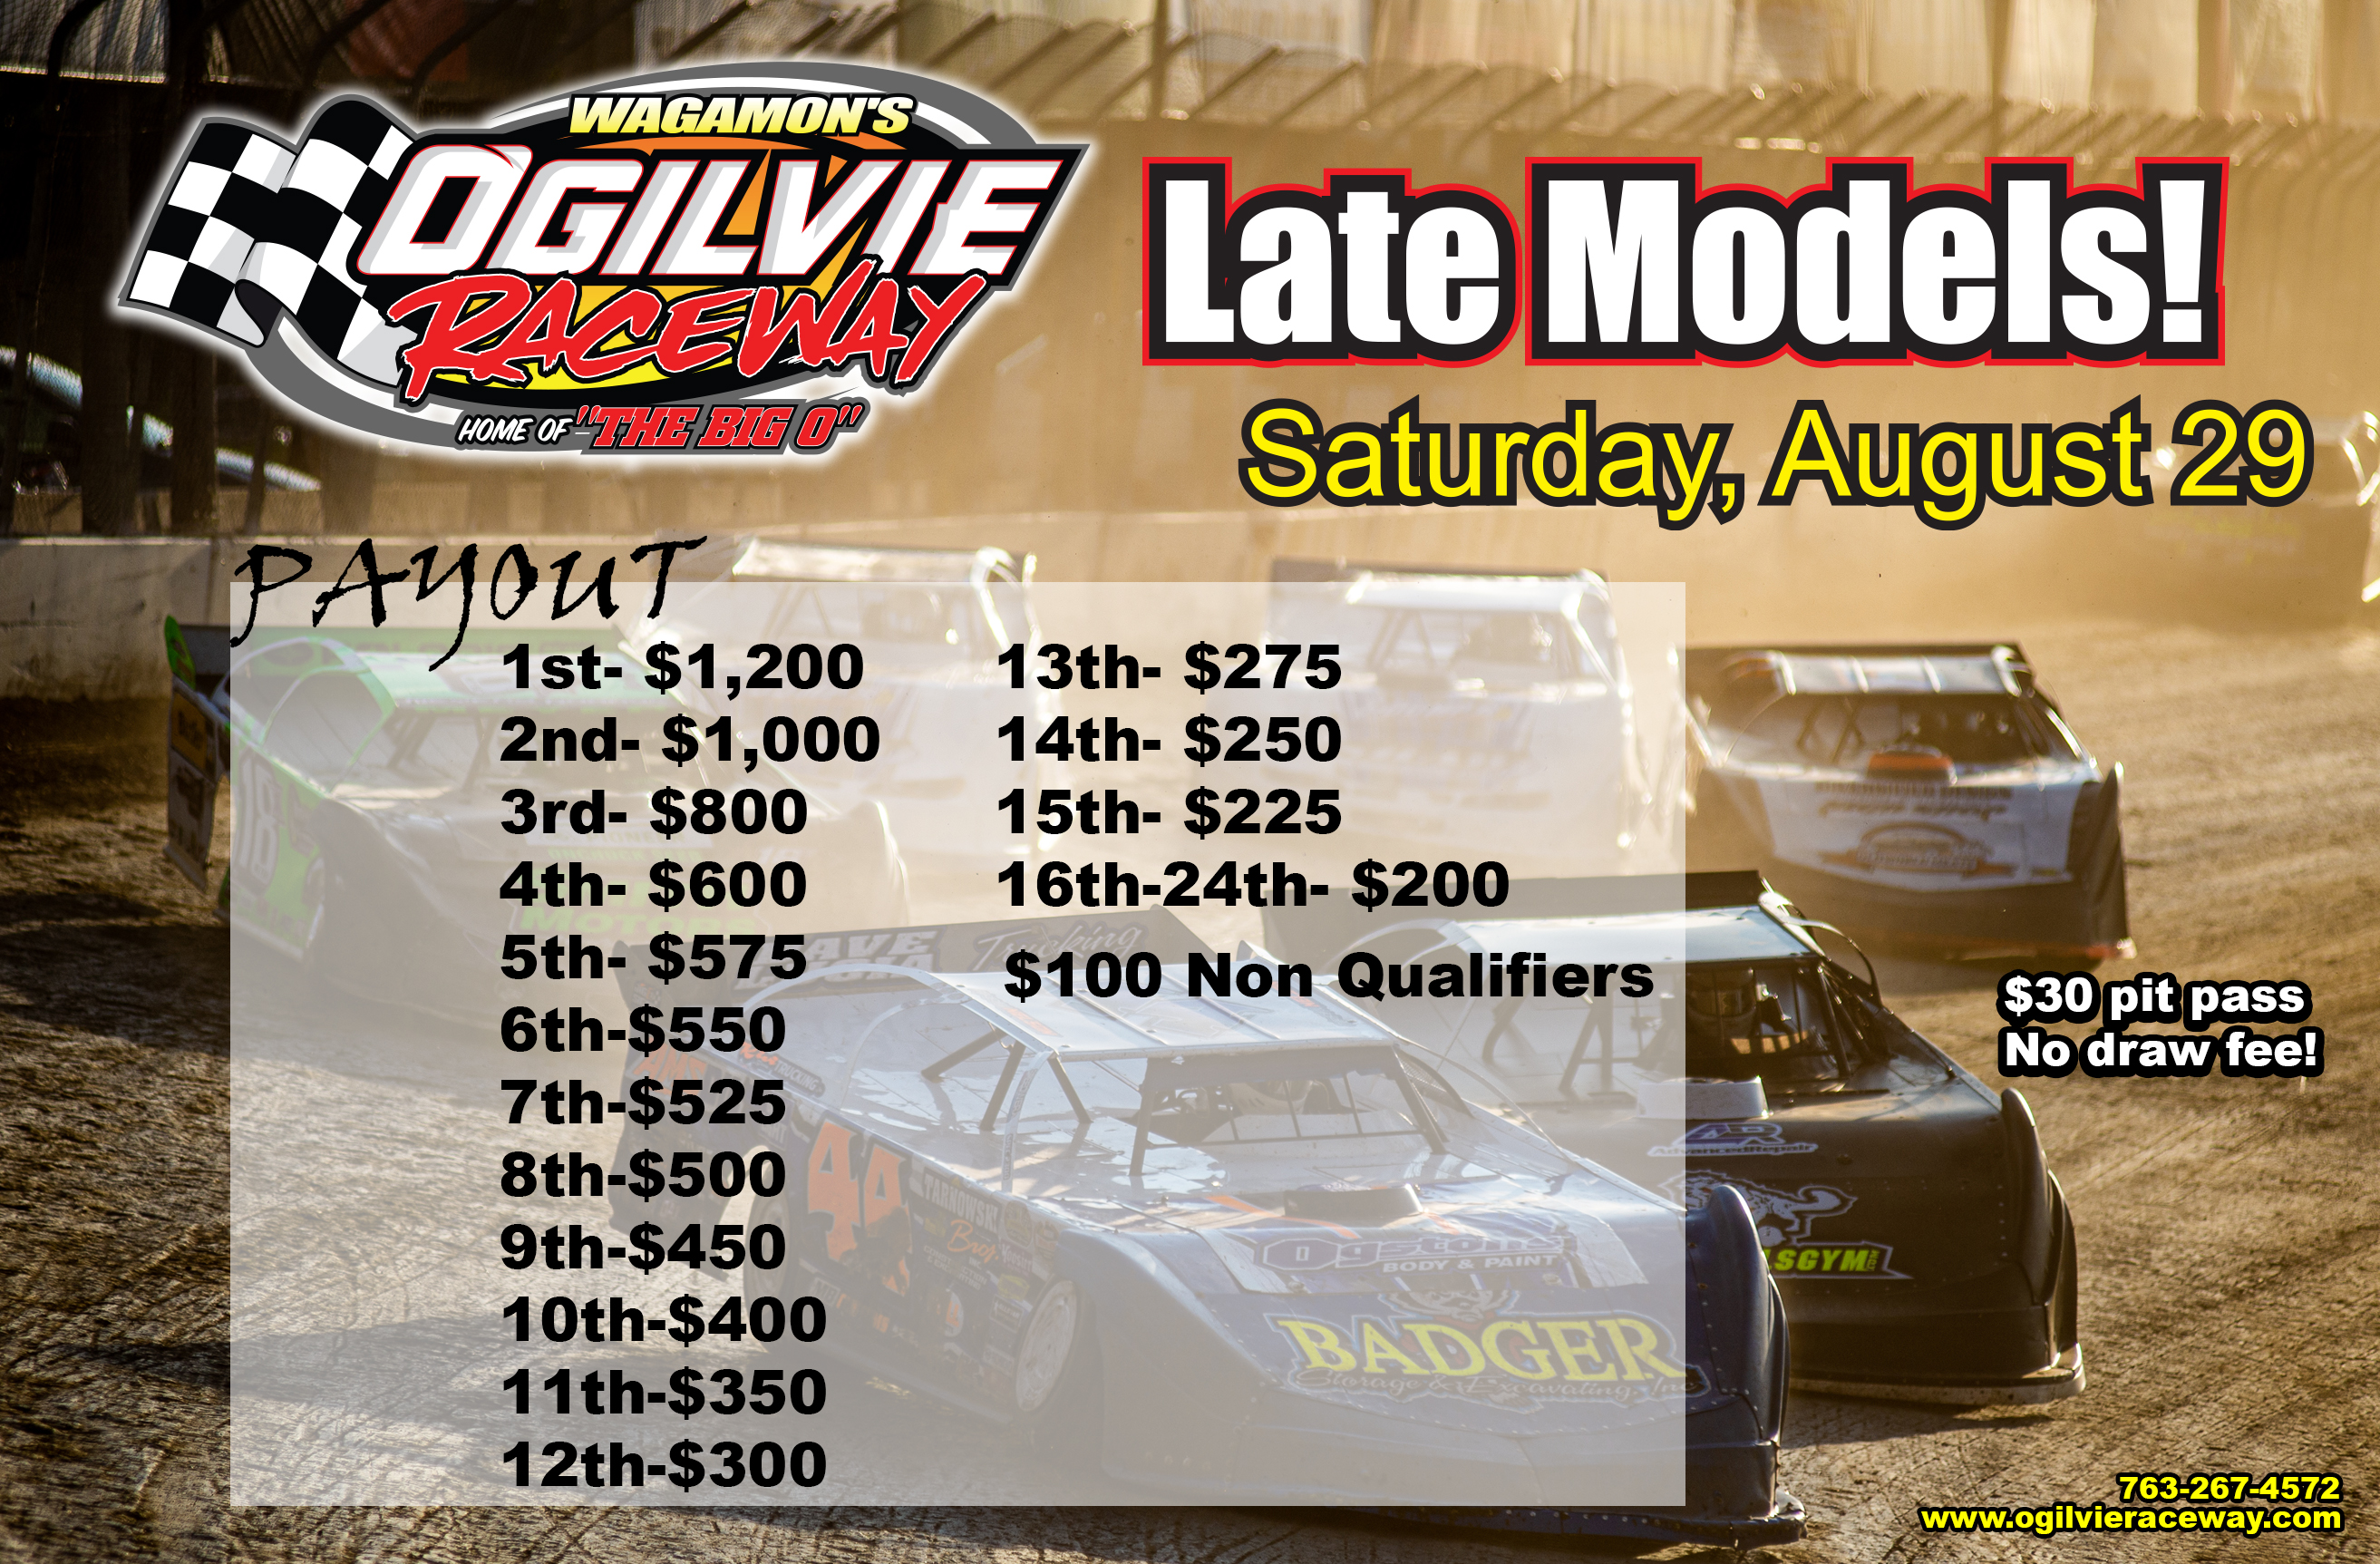 Late Models and Track Championship on Saturday, August 29th